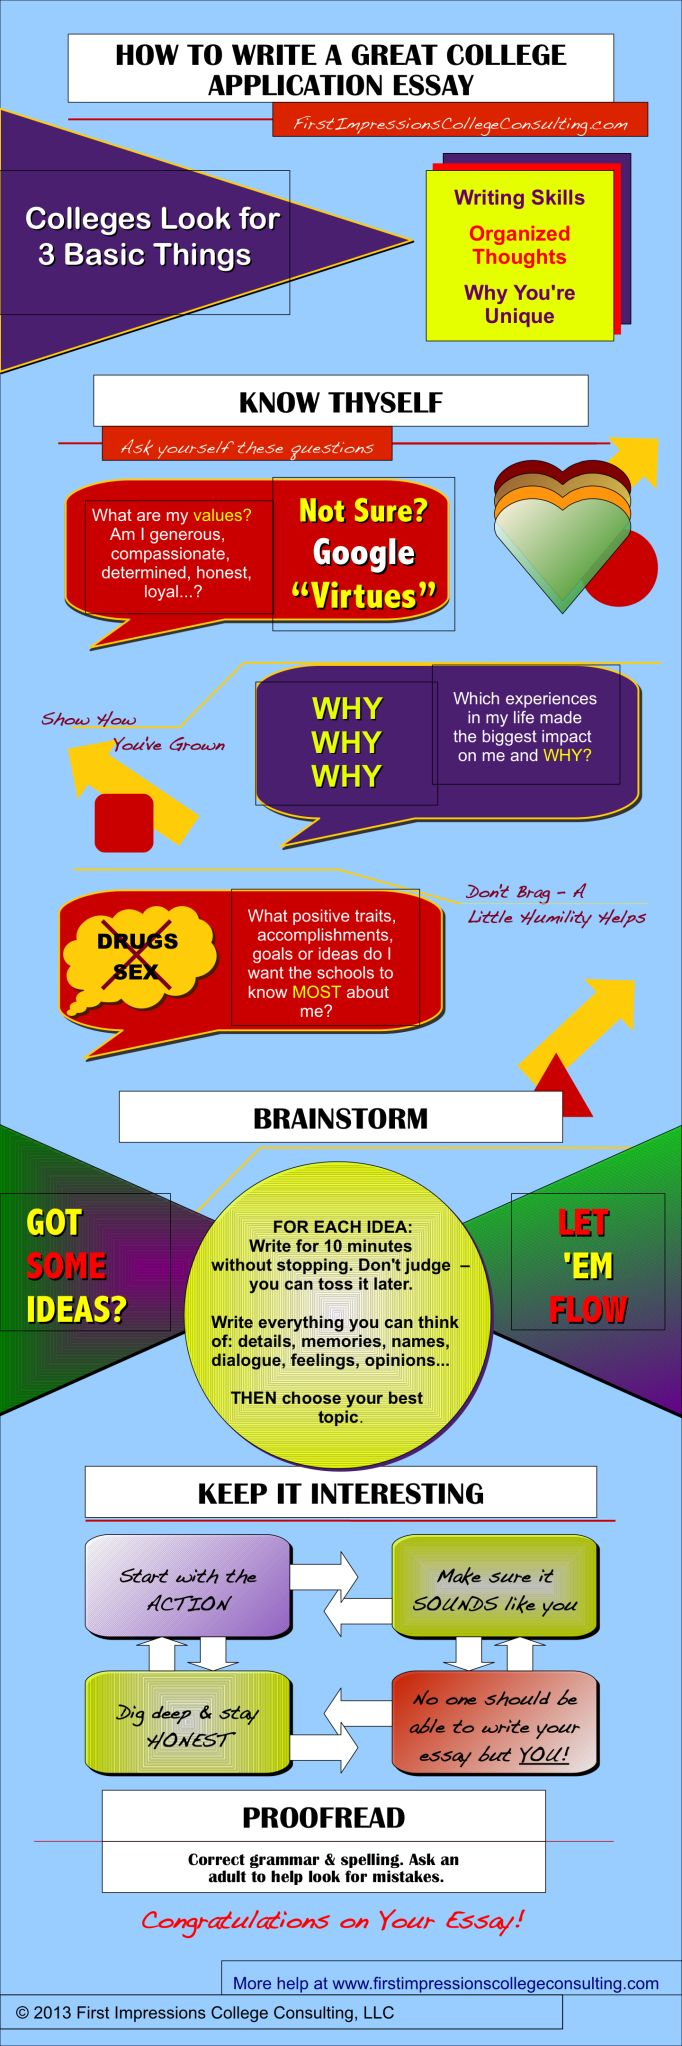 best ideas about college application essay here it is my first infographic i won t tell you how long it took me but it was worth it enjoy sharon epstein is owner of first impressions college